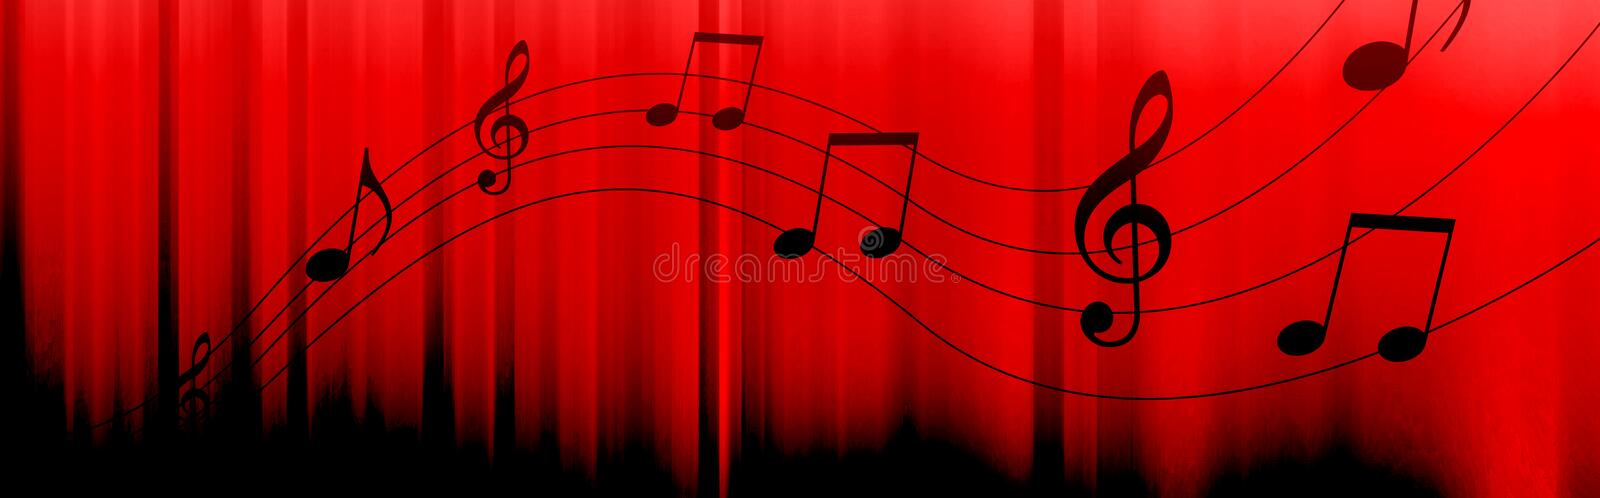 Download Music notes header stock illustration. Illustration of backdrops - 16901241